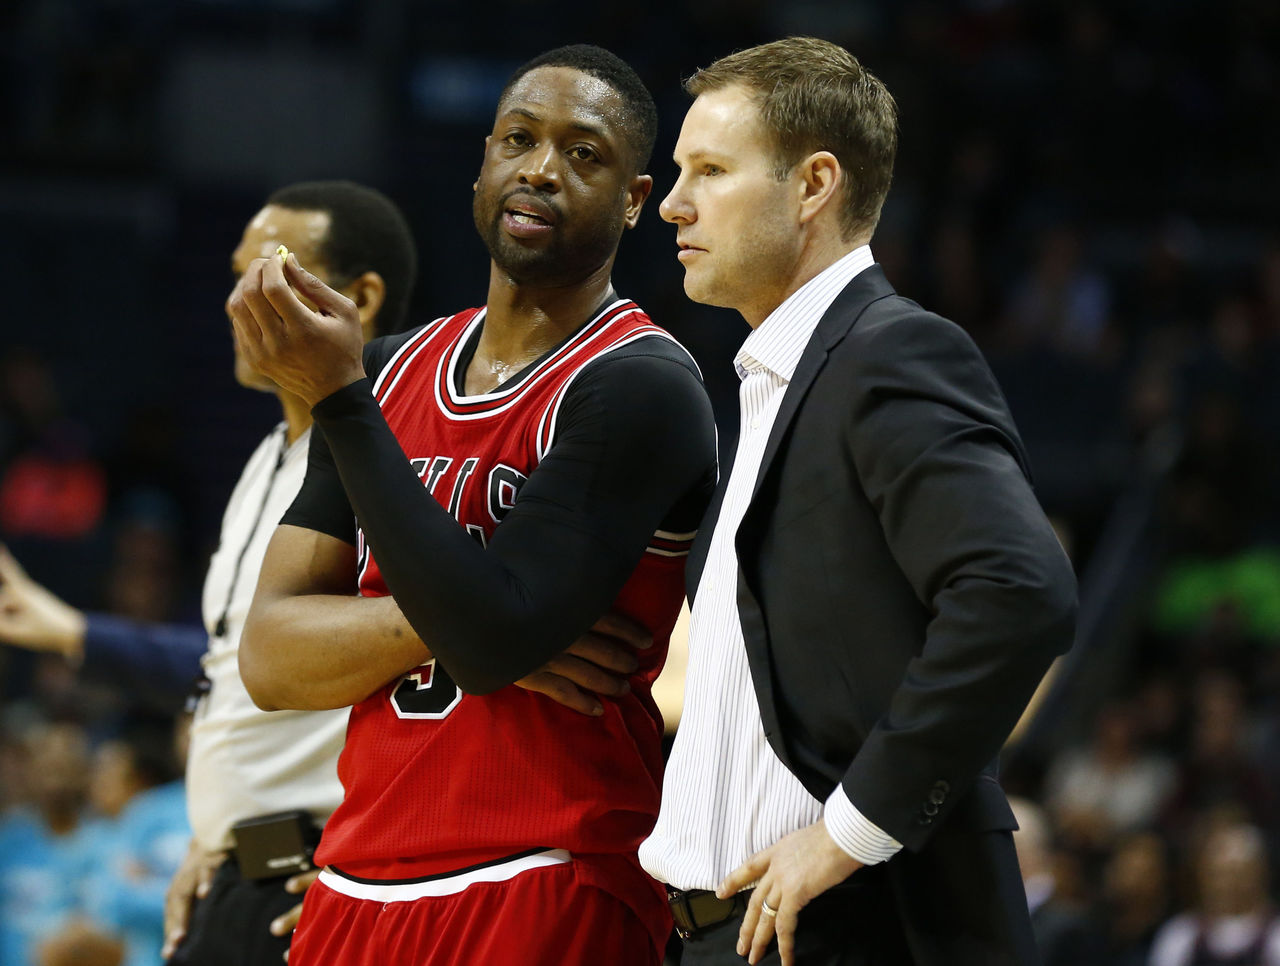 Cropped 2017 03 14t020627z 415553599 nocid rtrmadp 3 nba chicago bulls at charlotte hornets